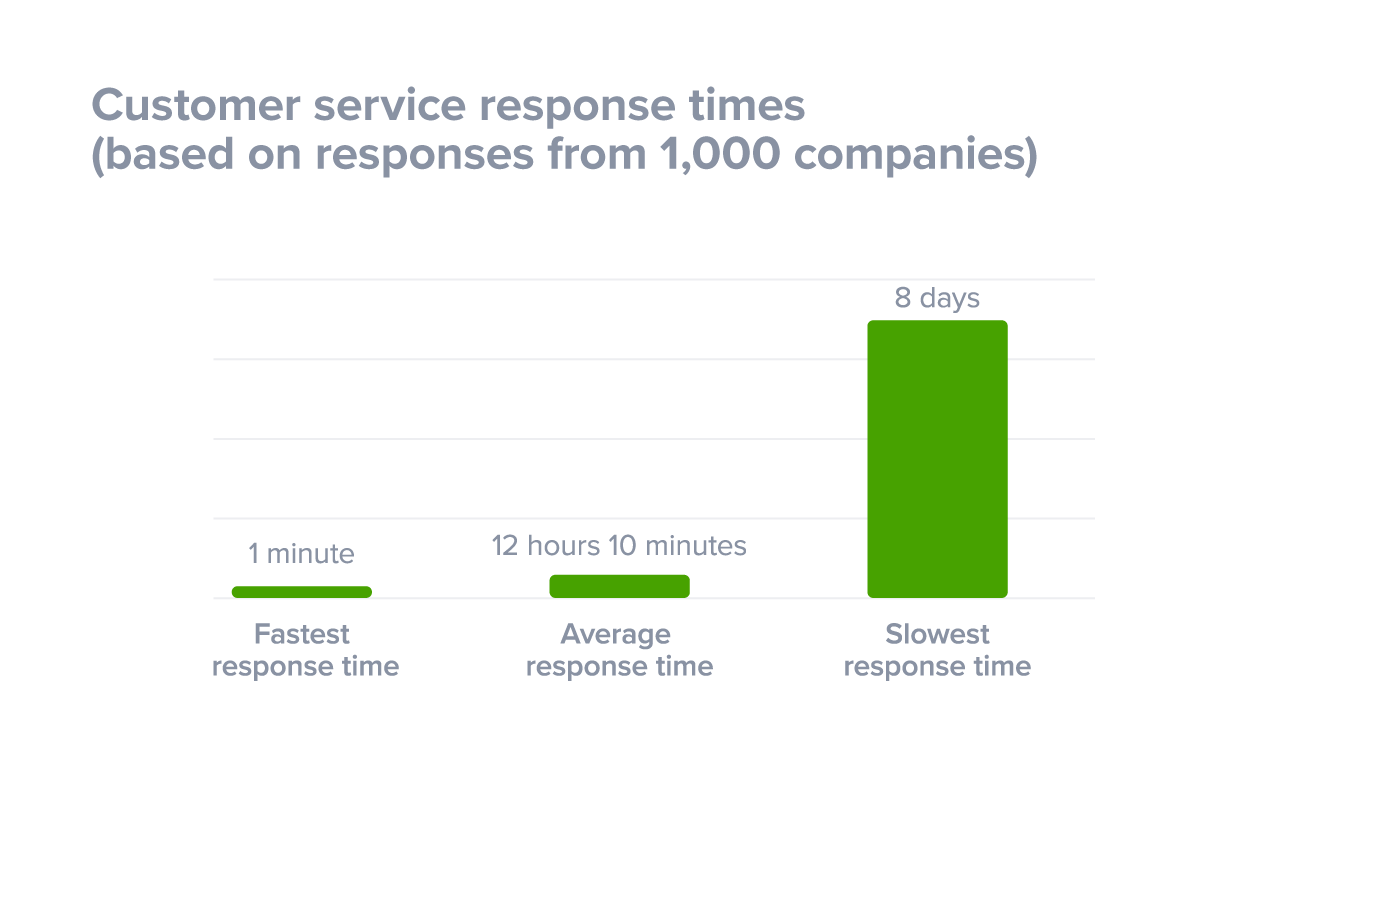 Average response times (fastest to slowest)